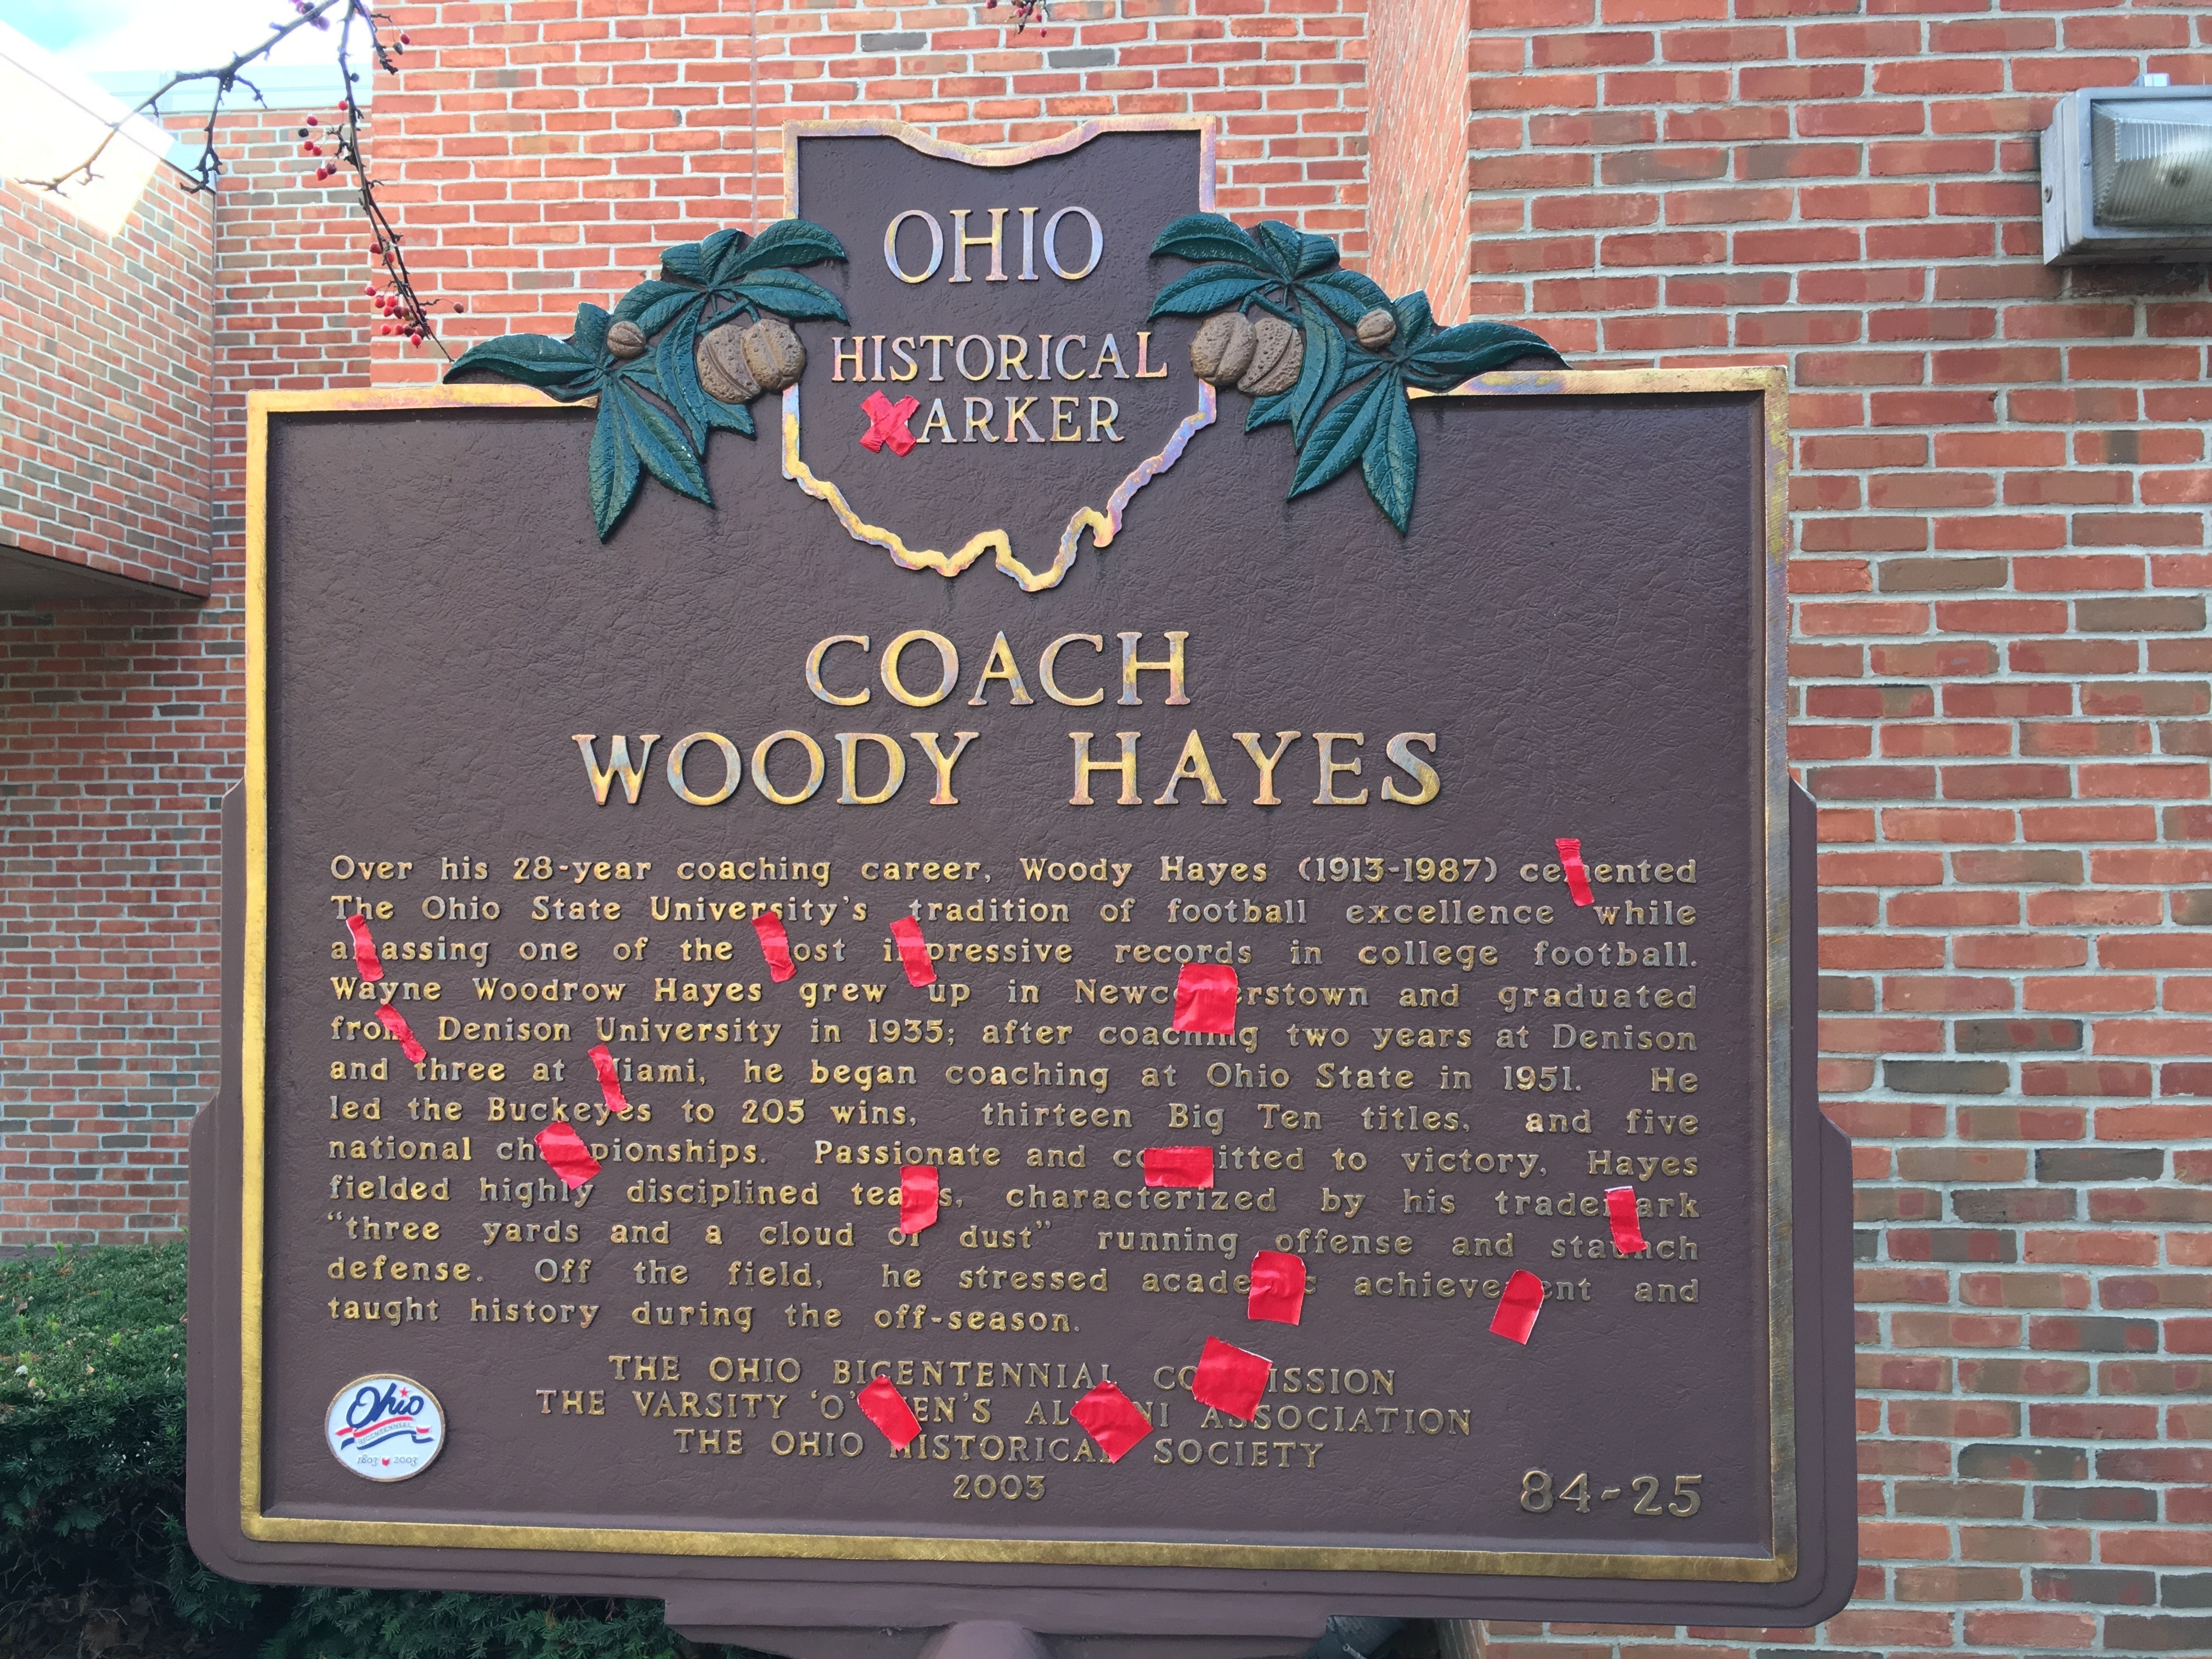 Red tape covers the Ms on the official state Ohio historical marker recognizing former Ohio State NCAA college football coach Woody Hayes at the Woody Hayes Football Center on the Ohio State University campus in Columbus, Ohio,  Monday, Nov. 21, 2016. Ohi